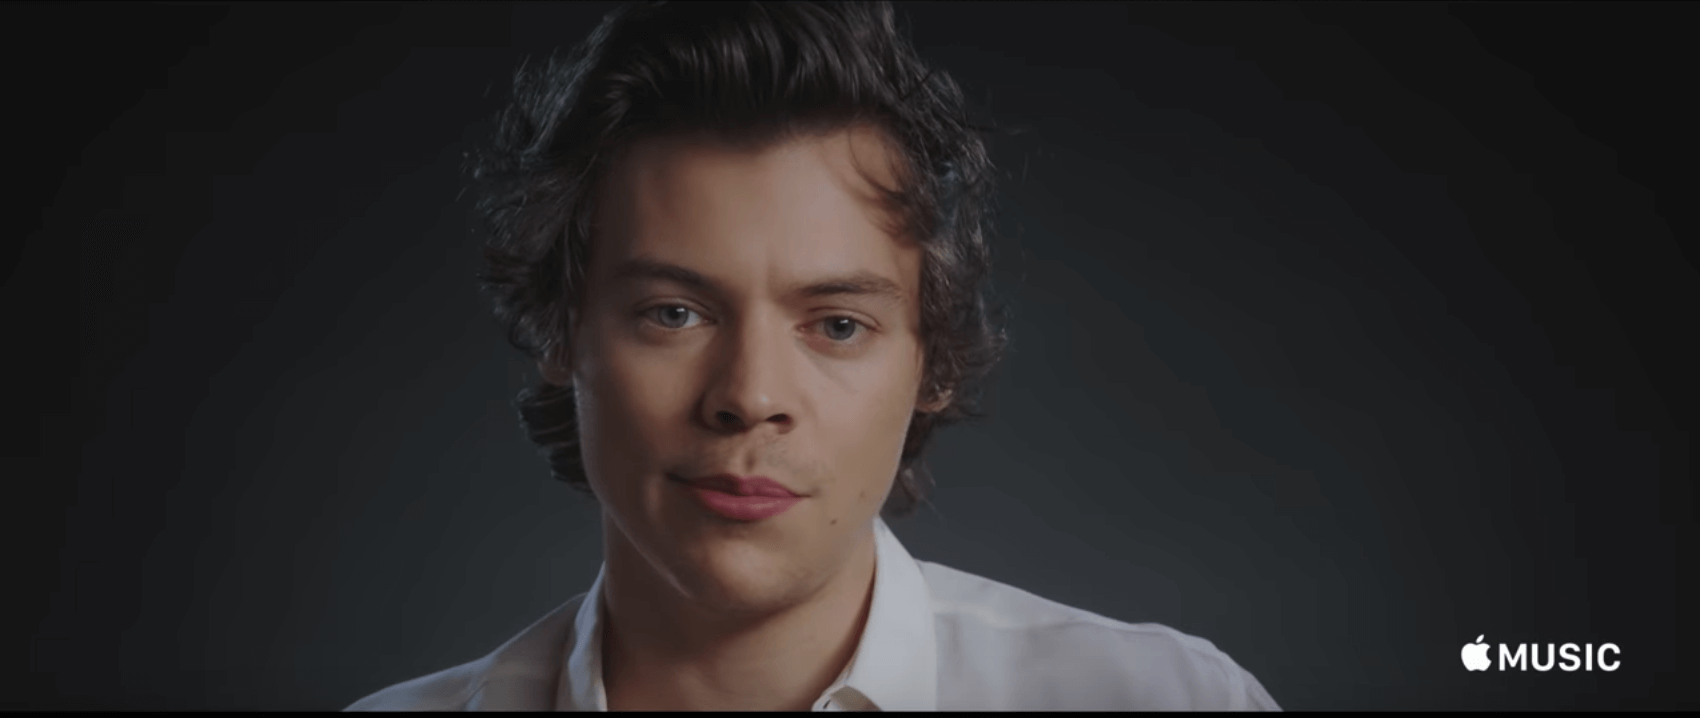 "La película ""Harry Styles: Behind the album"" se estrenará de forma exclusiva en Apple Music"